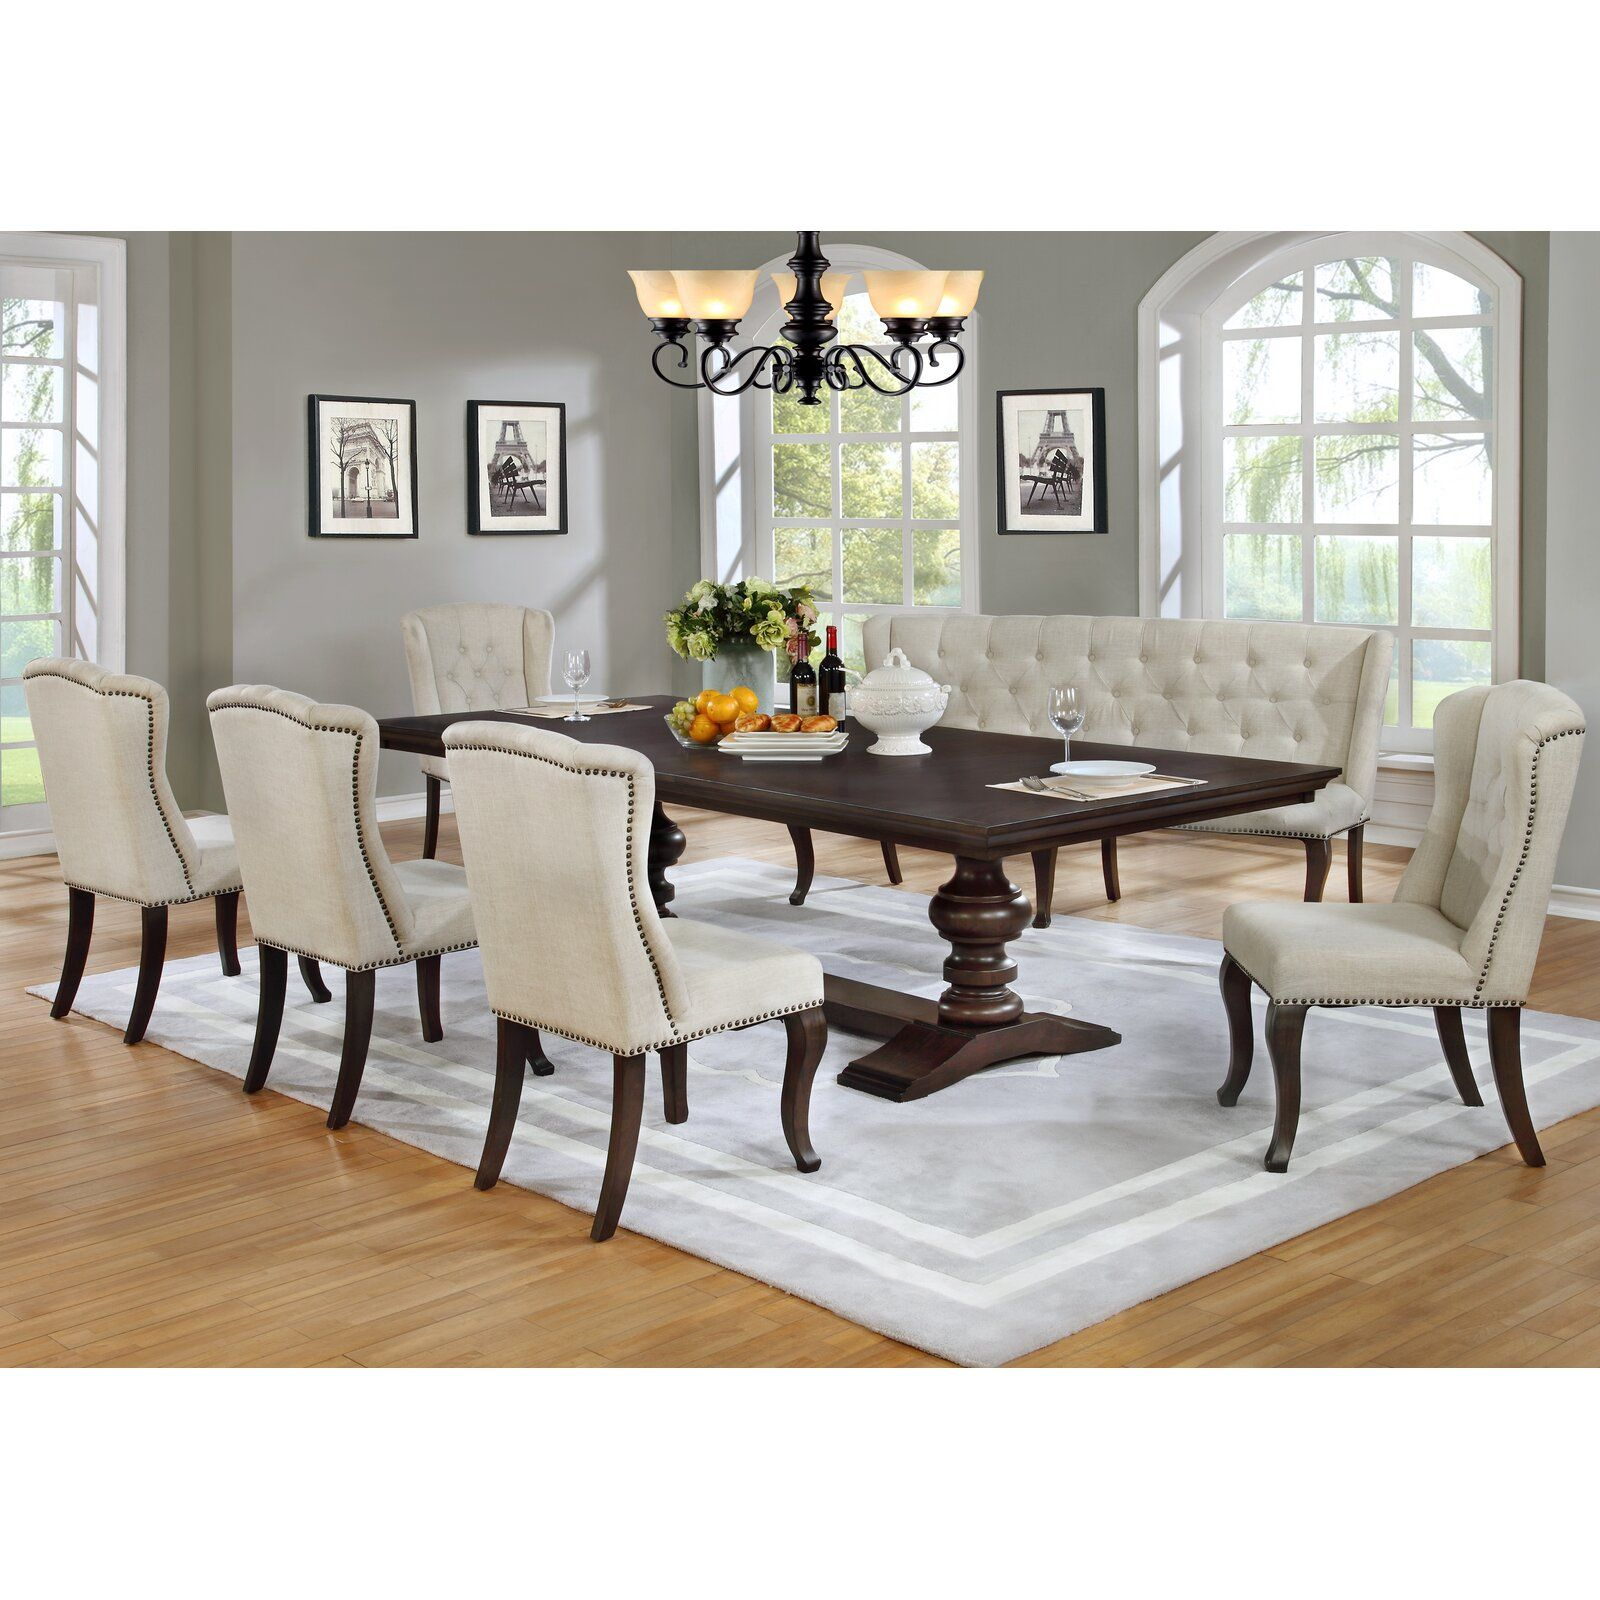 Kirt 7 Piece Dining Set Dining Table Dining Room Sets